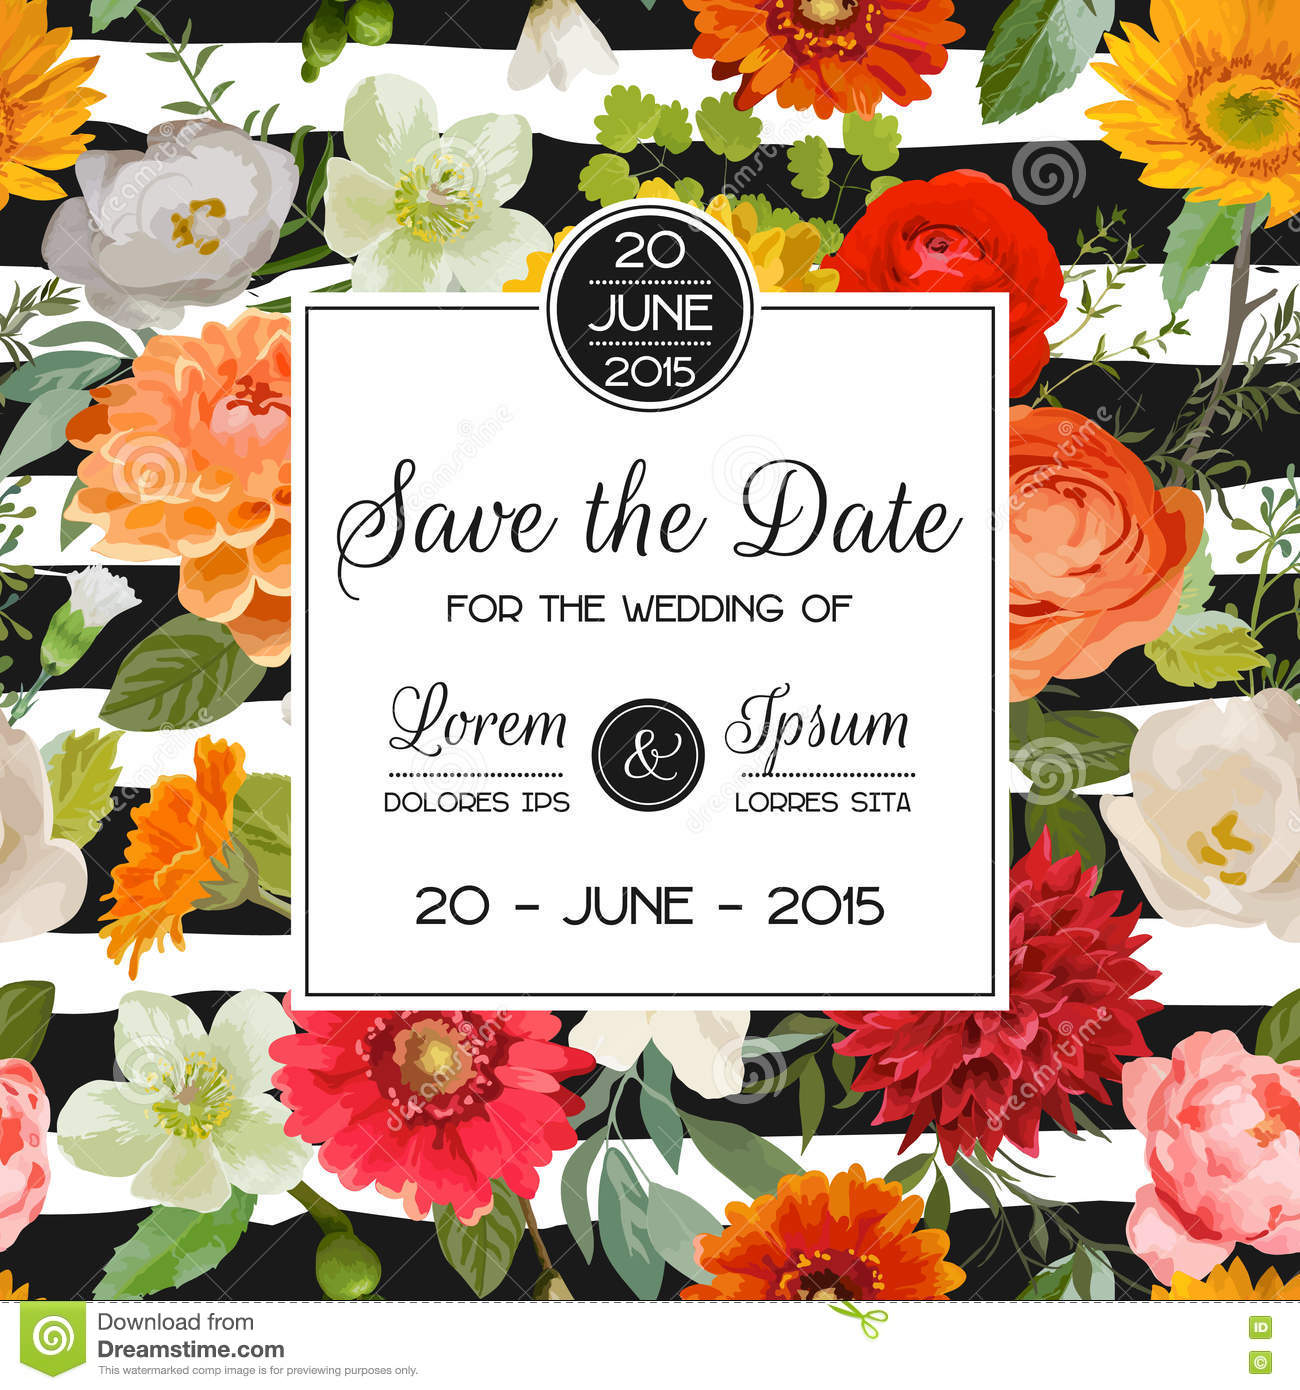 save the date wedding card summer and autumn flowers stock vector